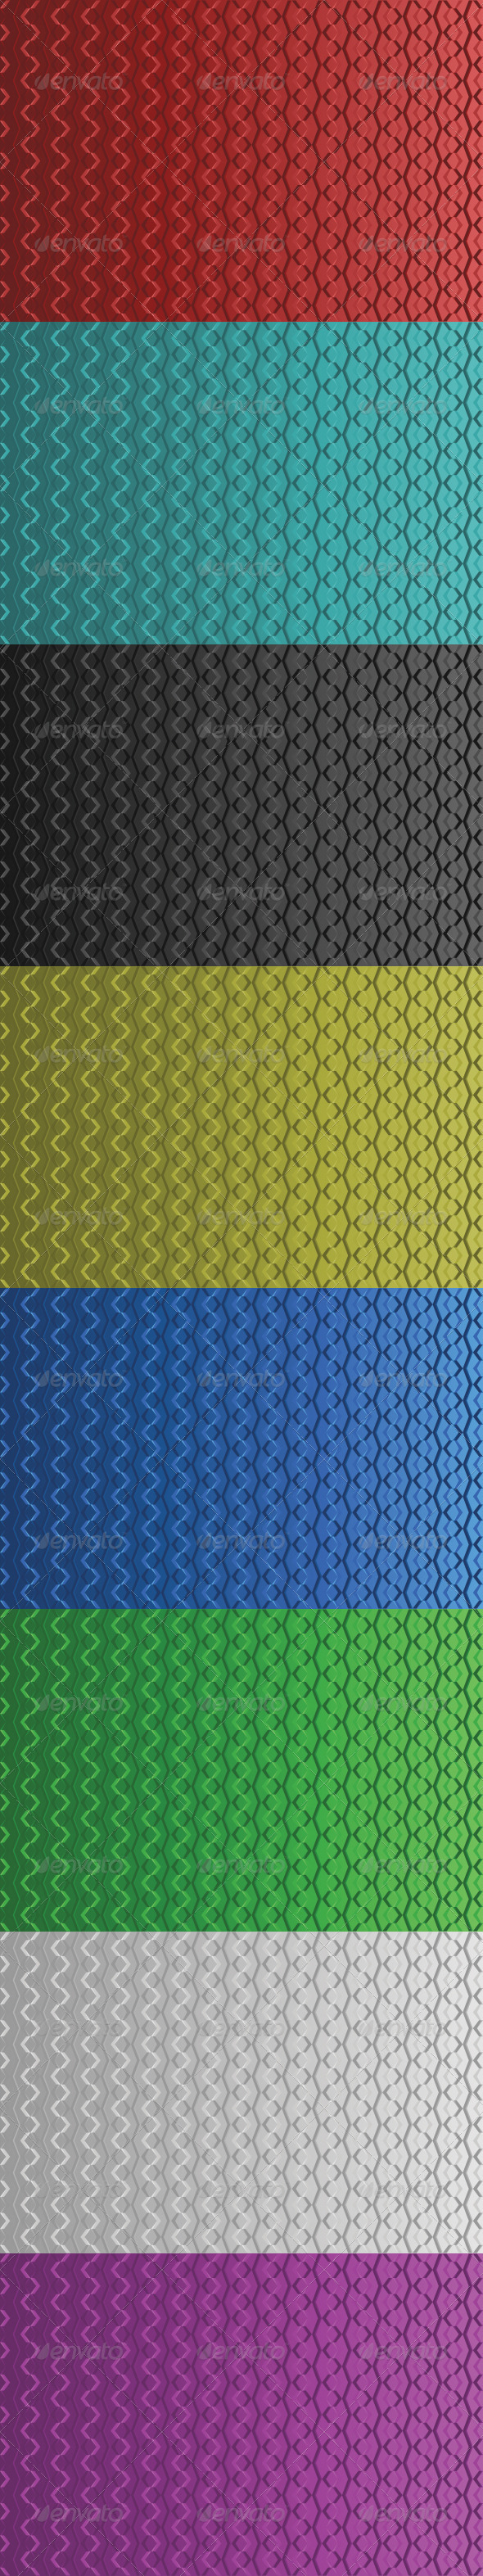 GraphicRiver Infinity Background 5466963